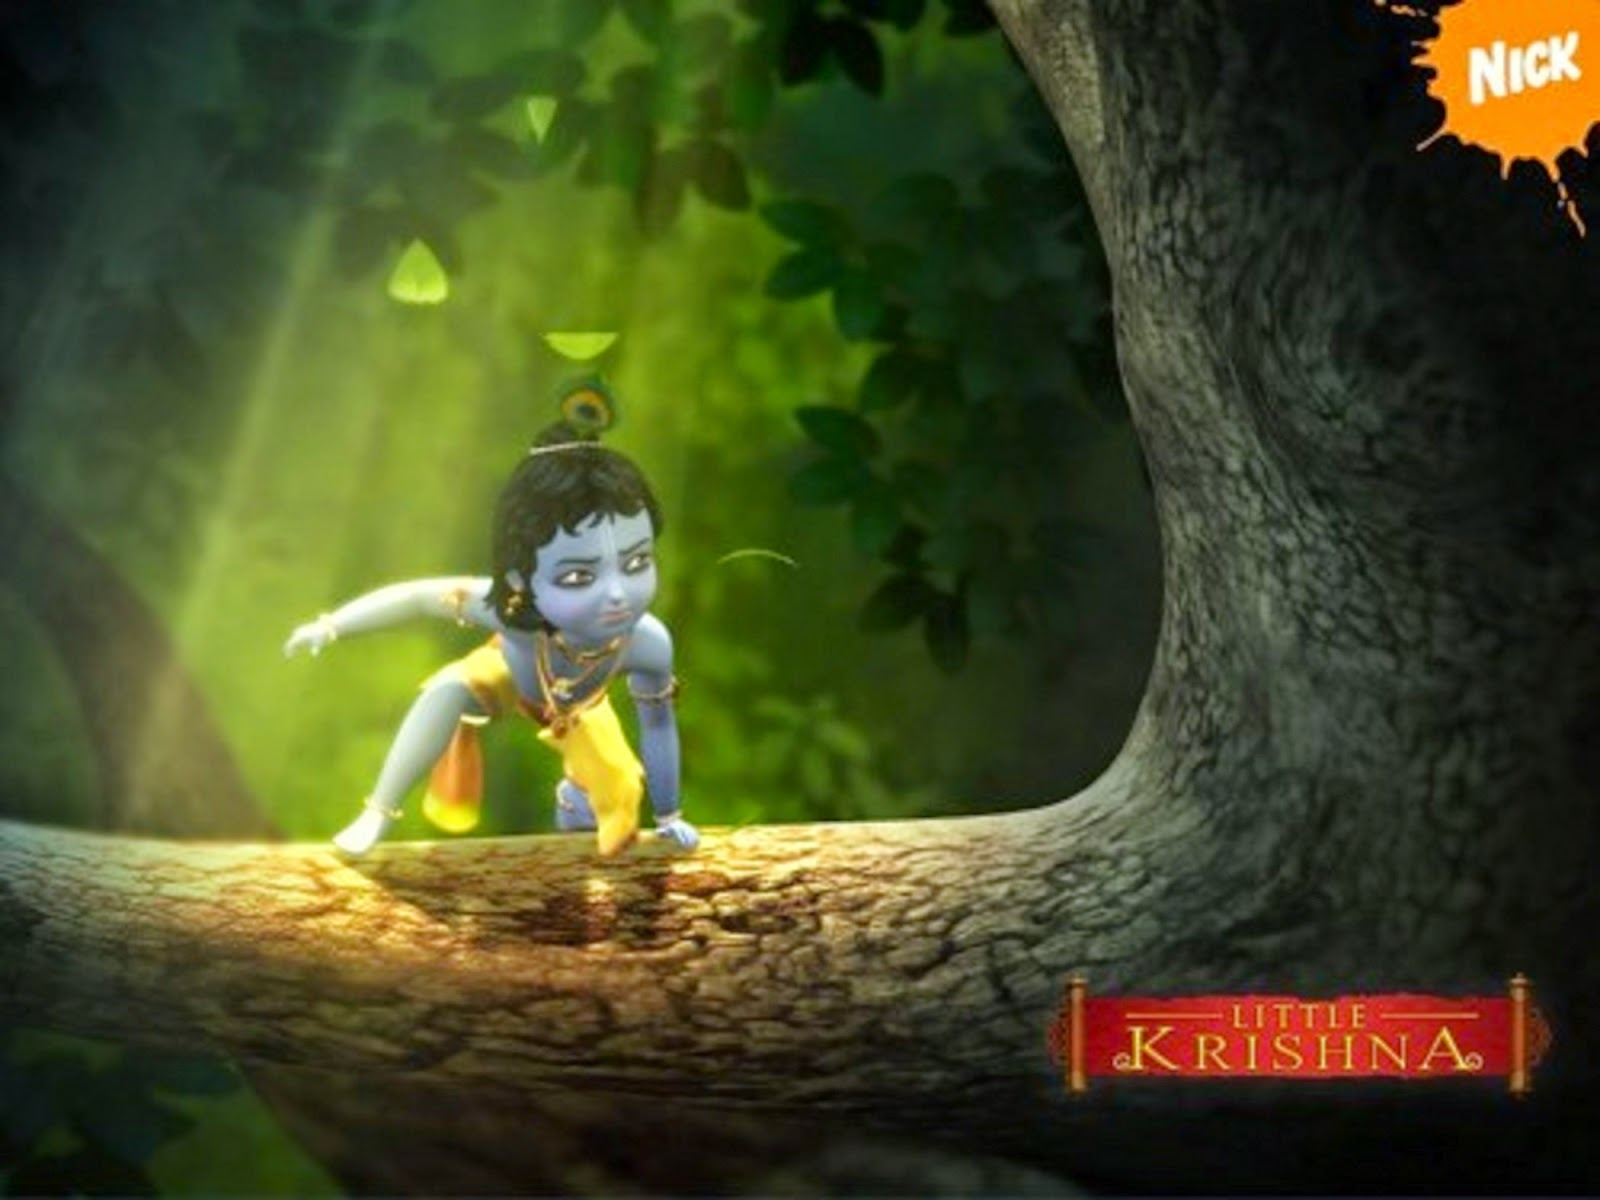 little krishna movie analysis essay We will write a custom essay sample on lord krishna specifically for you for only $1638 $139/page  little krishna movie analysis  hare krishna community  being virtuous though confucius, krishna and socrates  topic: lord krishna send by clicking send,.